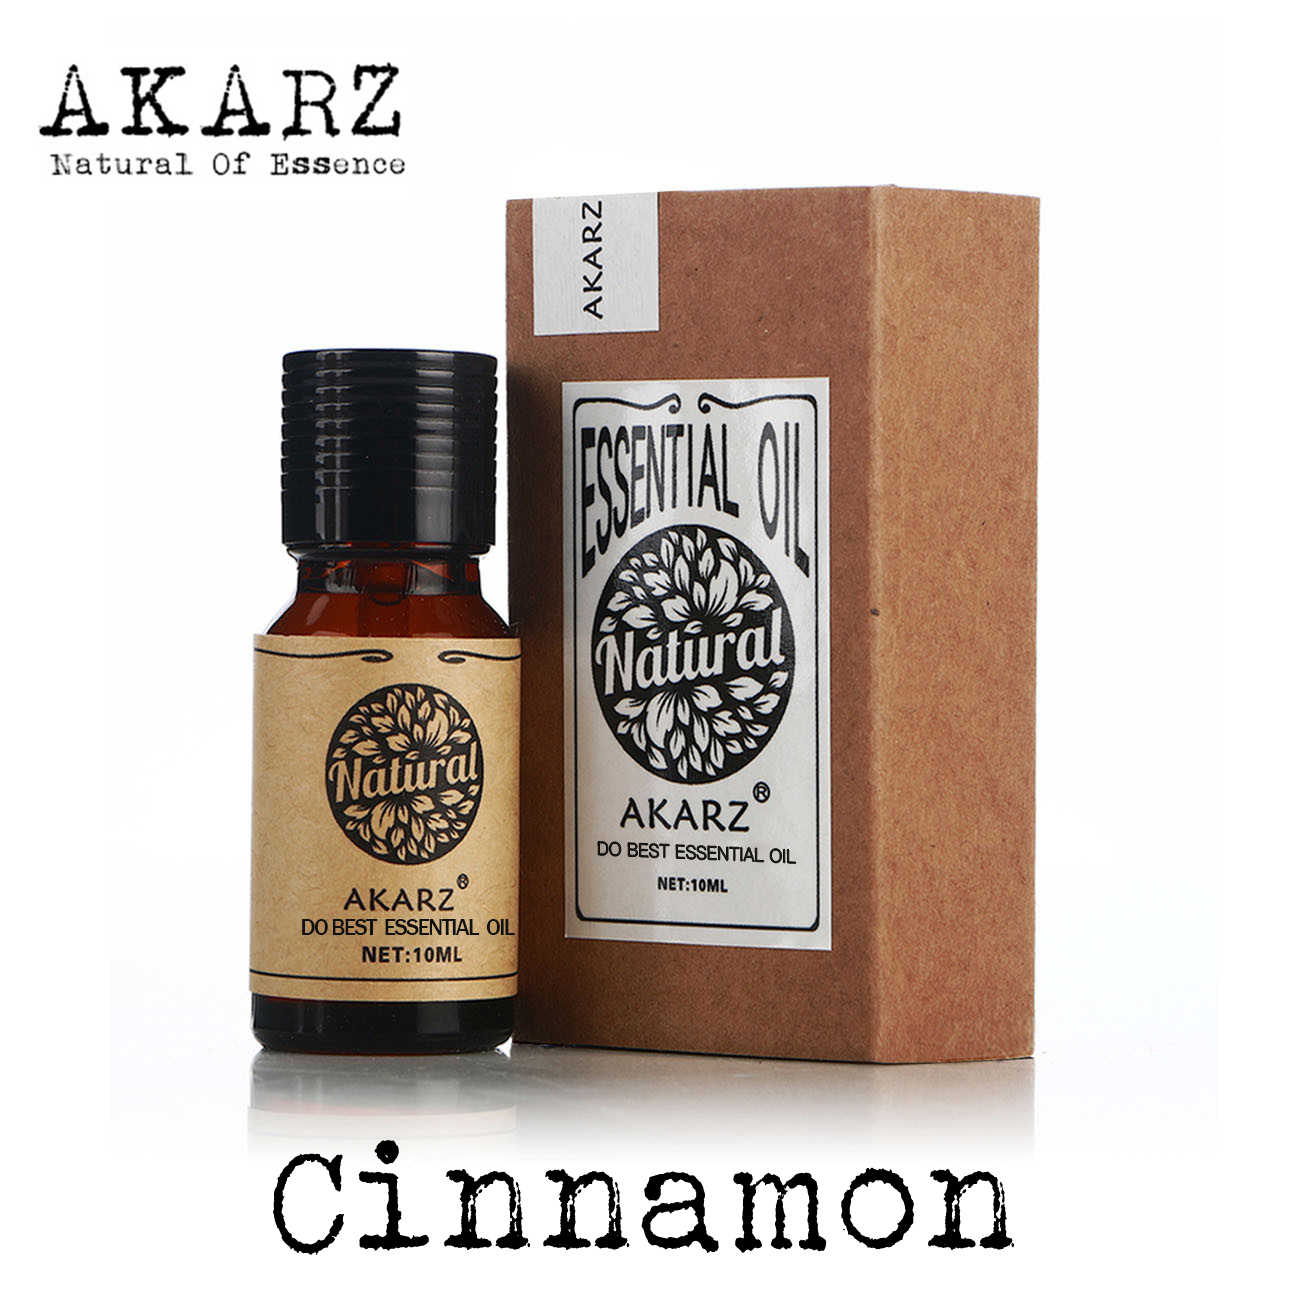 AKARZ Famous brand natural aromatherapy cinnamon oil essential oil Tighten the skin,Soothe the digestive tract creativity essential oil blend true botanical 100% pure and natural undiluted high quality therapeutic grade blend of rosemary clary sage hyssop marjoram cinnamon 5 ml